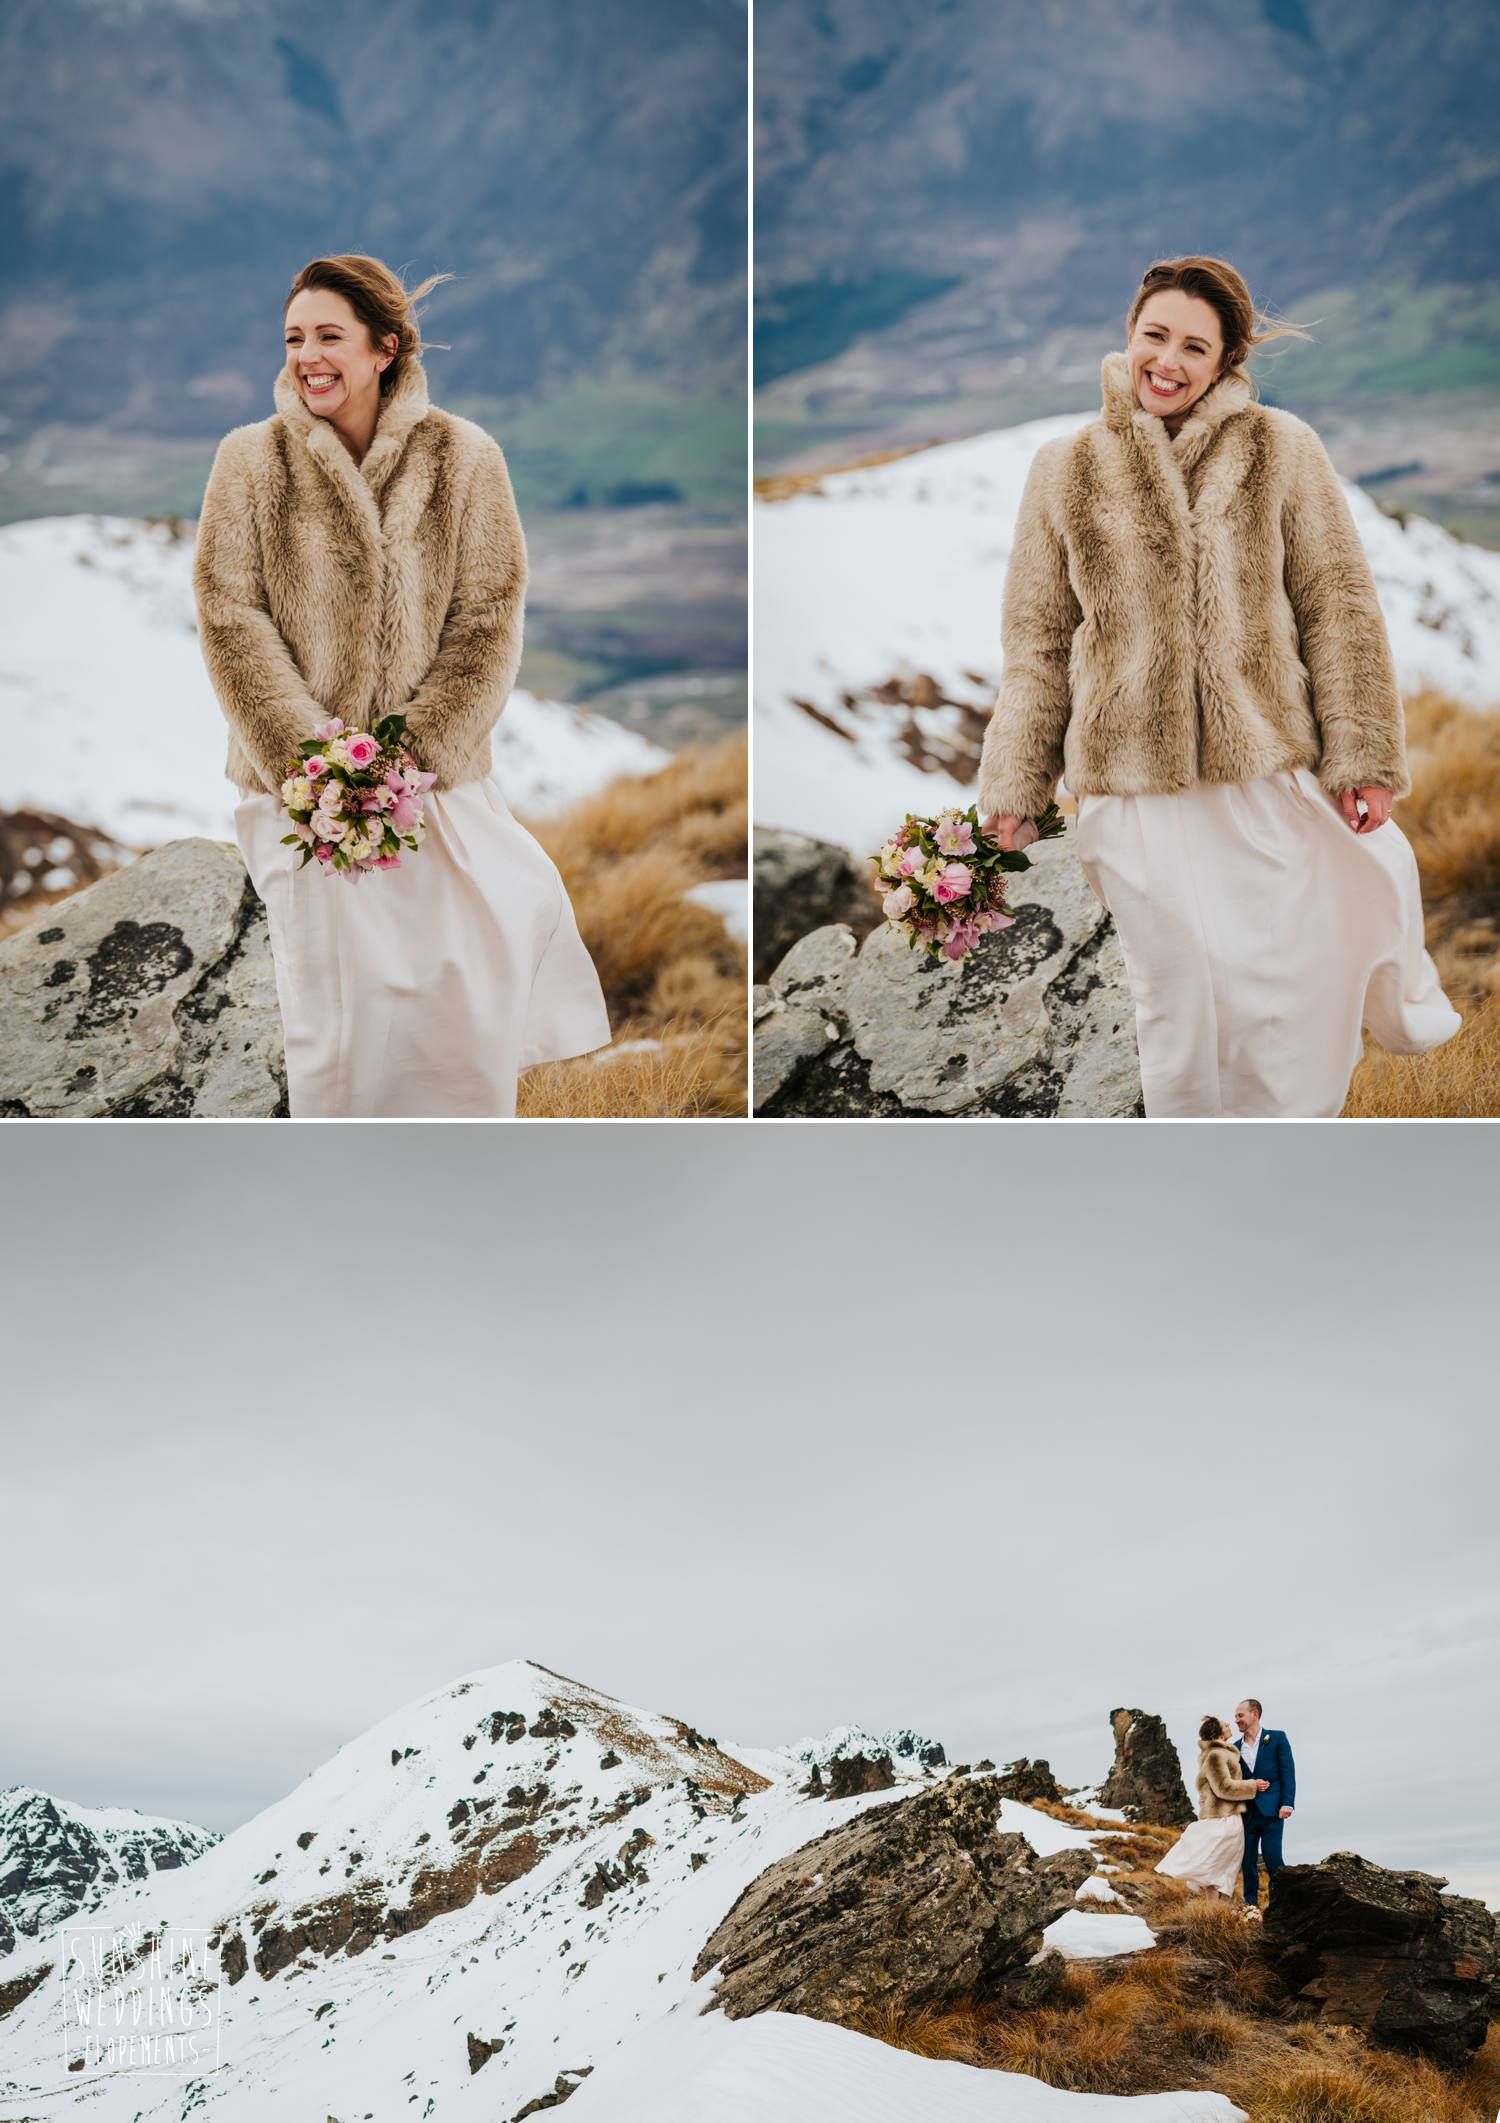 Elopement weding photos